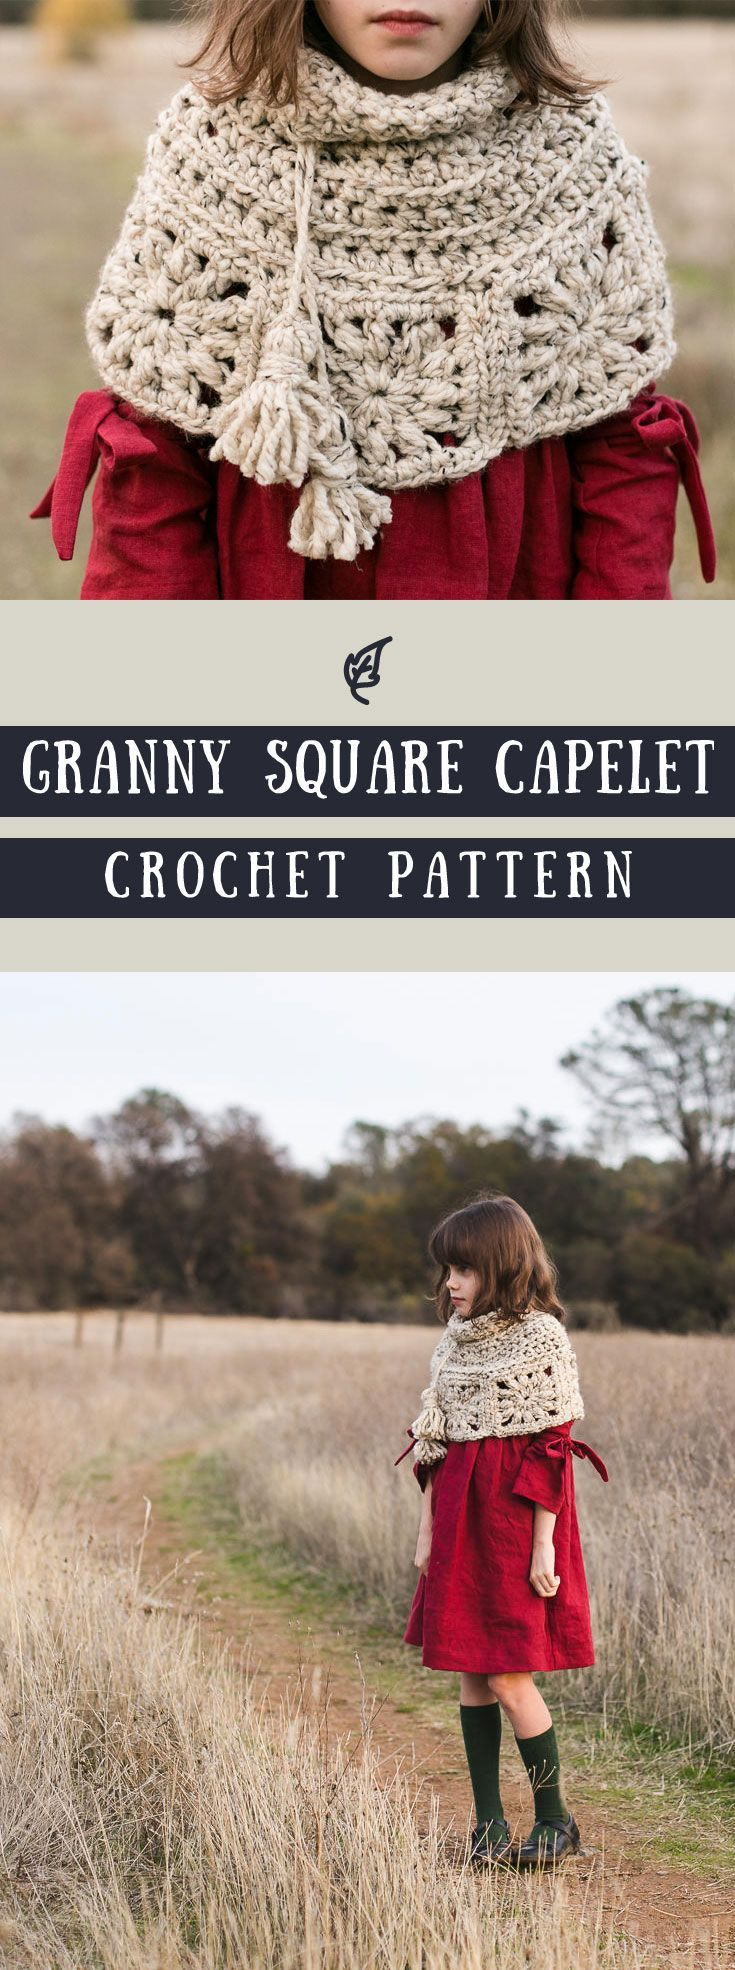 Granny Square Capelet Crochet Pattern | great for both kids and adults as a sweater alternative | in an effortless boho style | crochet cape pattern PDF available for instant download #ad #etsy #pattern #bohemian